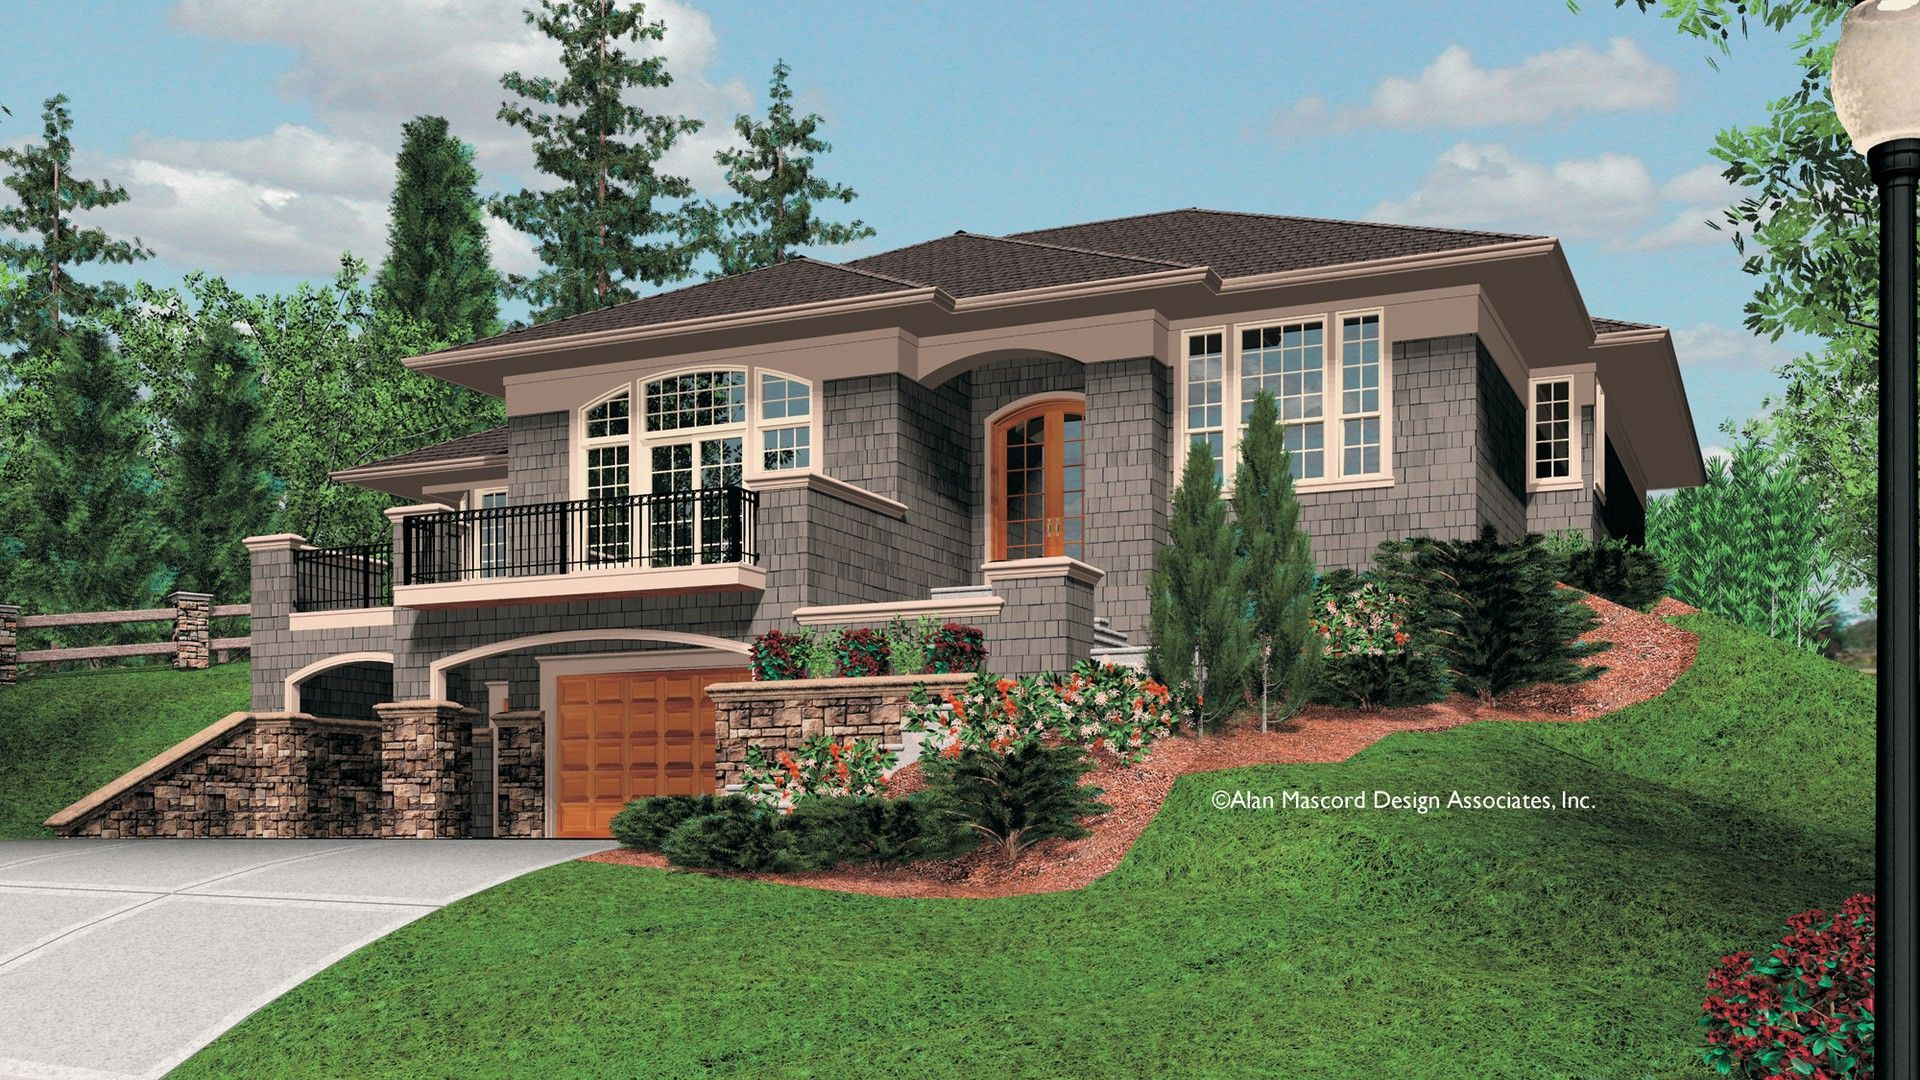 House Plans With A Basement Garage In 2020 Sloping Lot House Plan Basement House Plans Garage House Plans